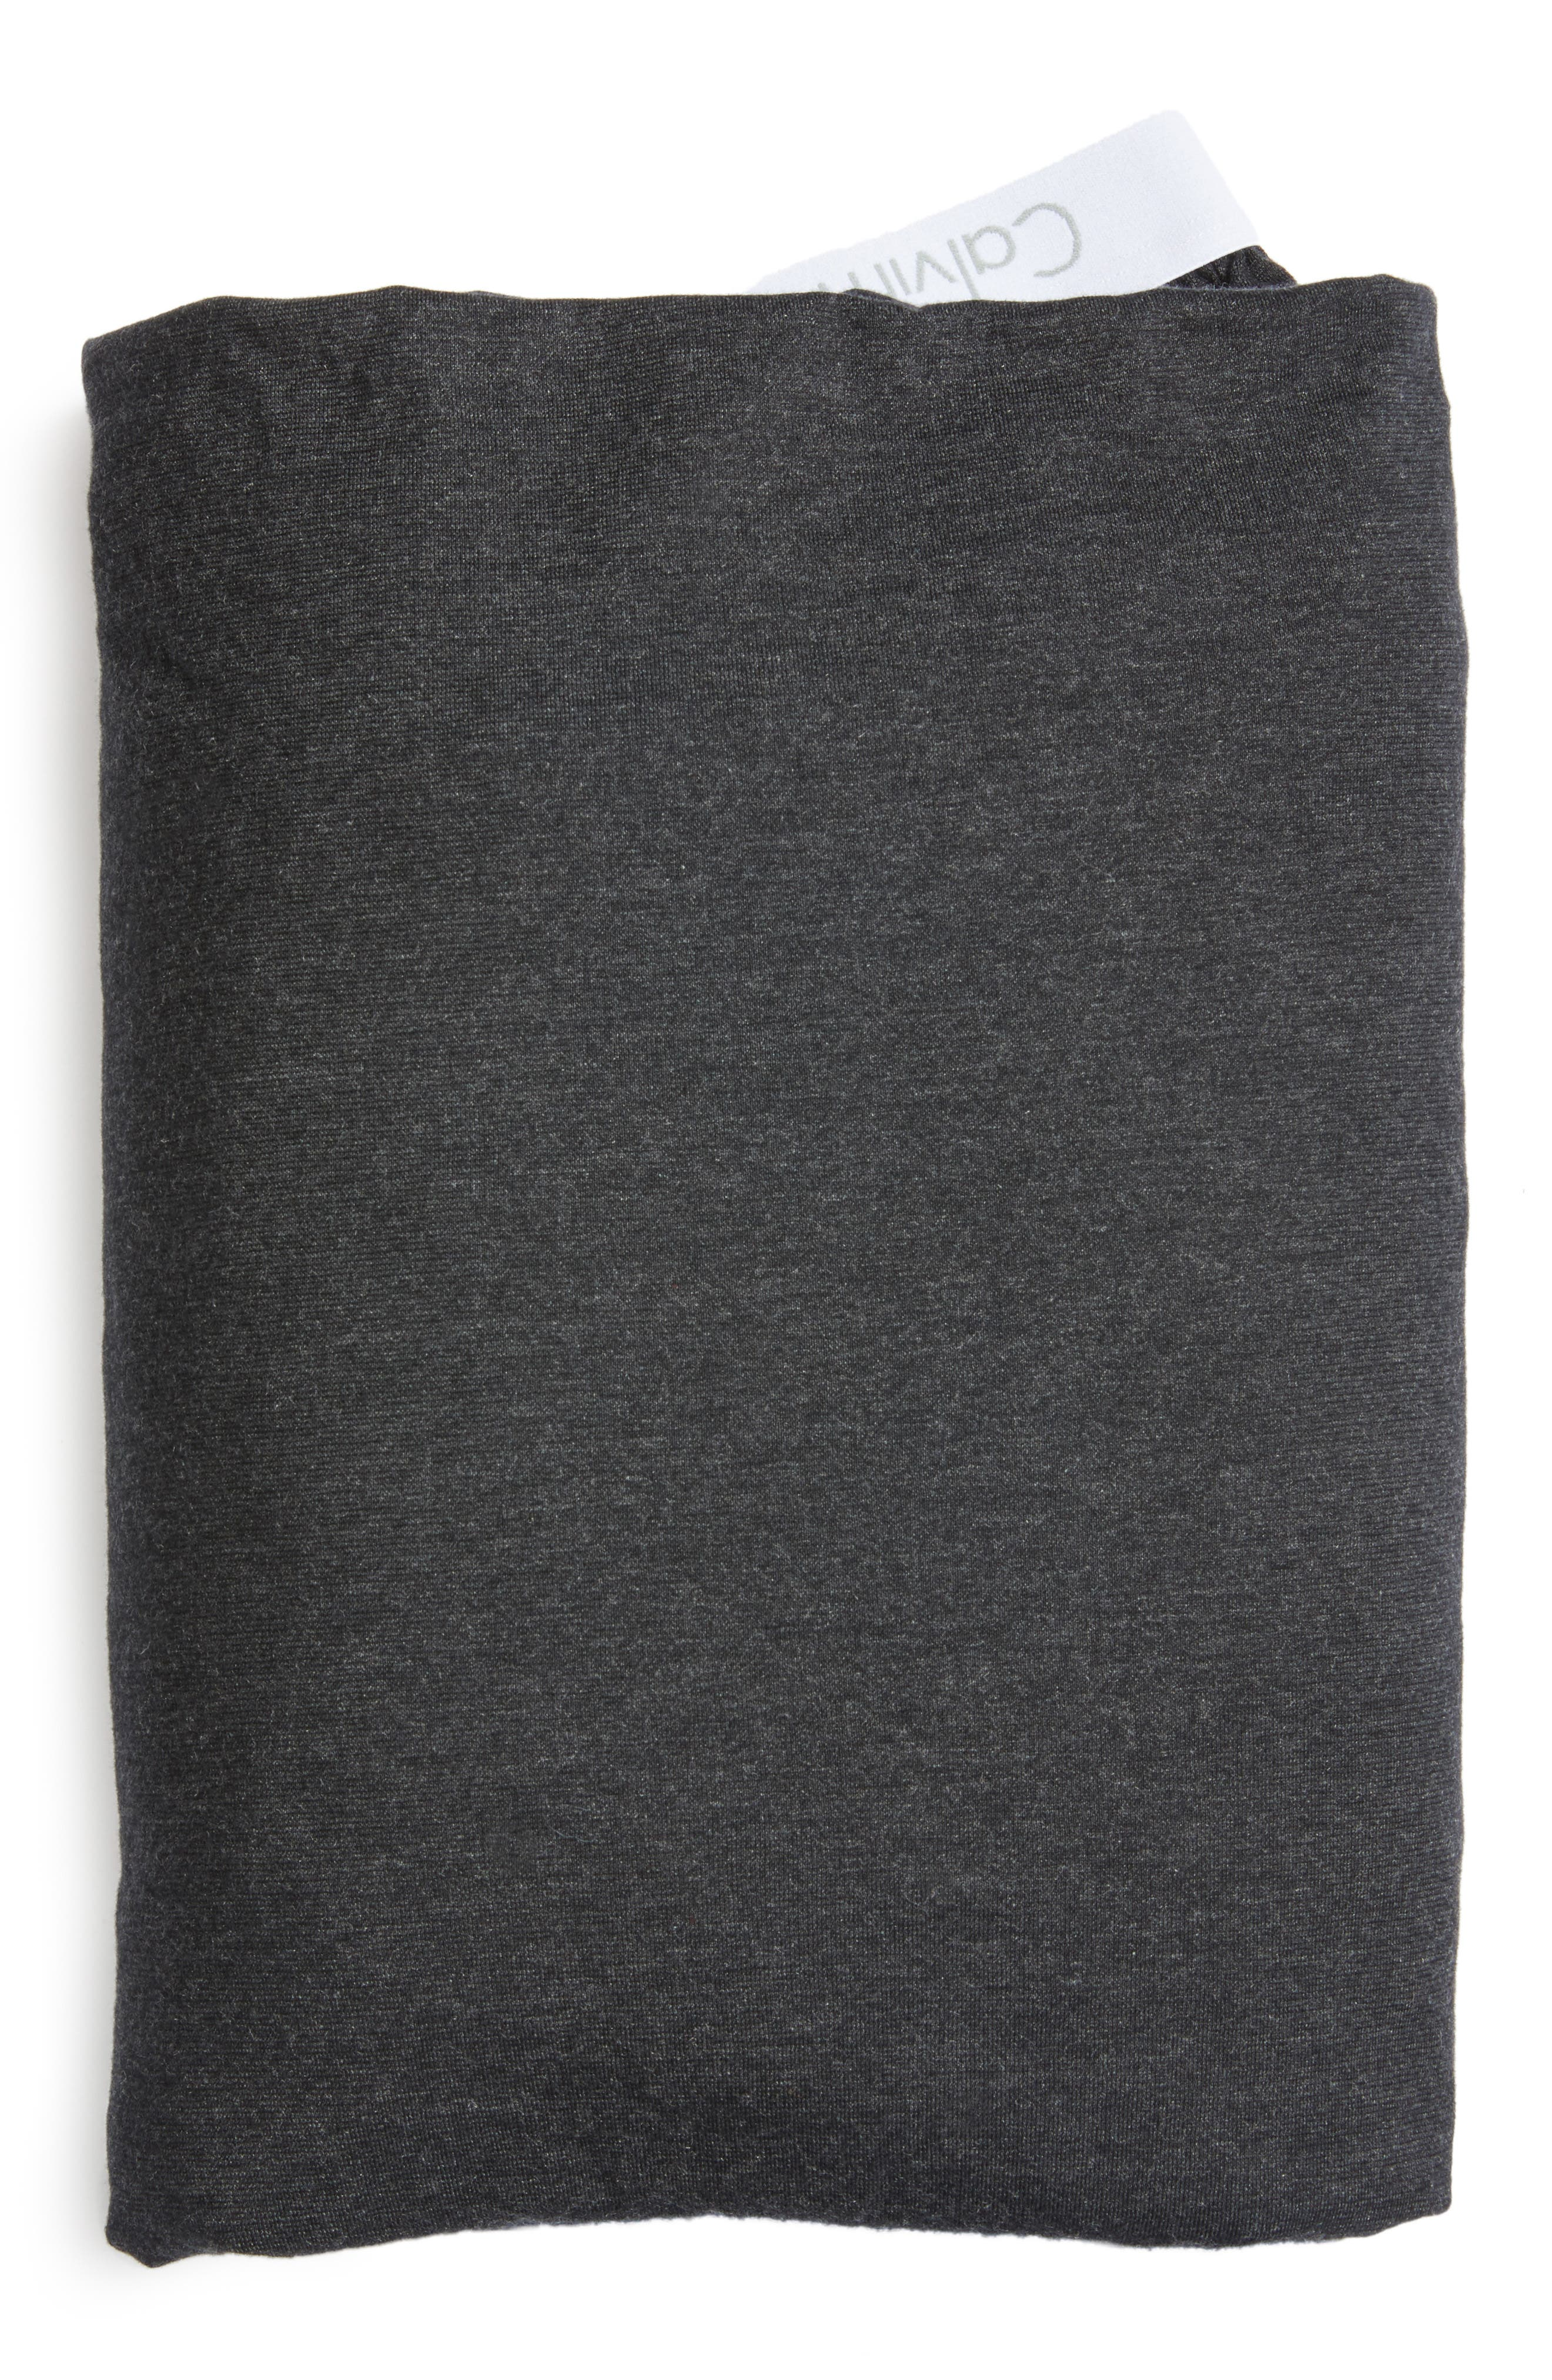 Cotton & Modal Jersey Fitted Sheet,                             Main thumbnail 1, color,                             001